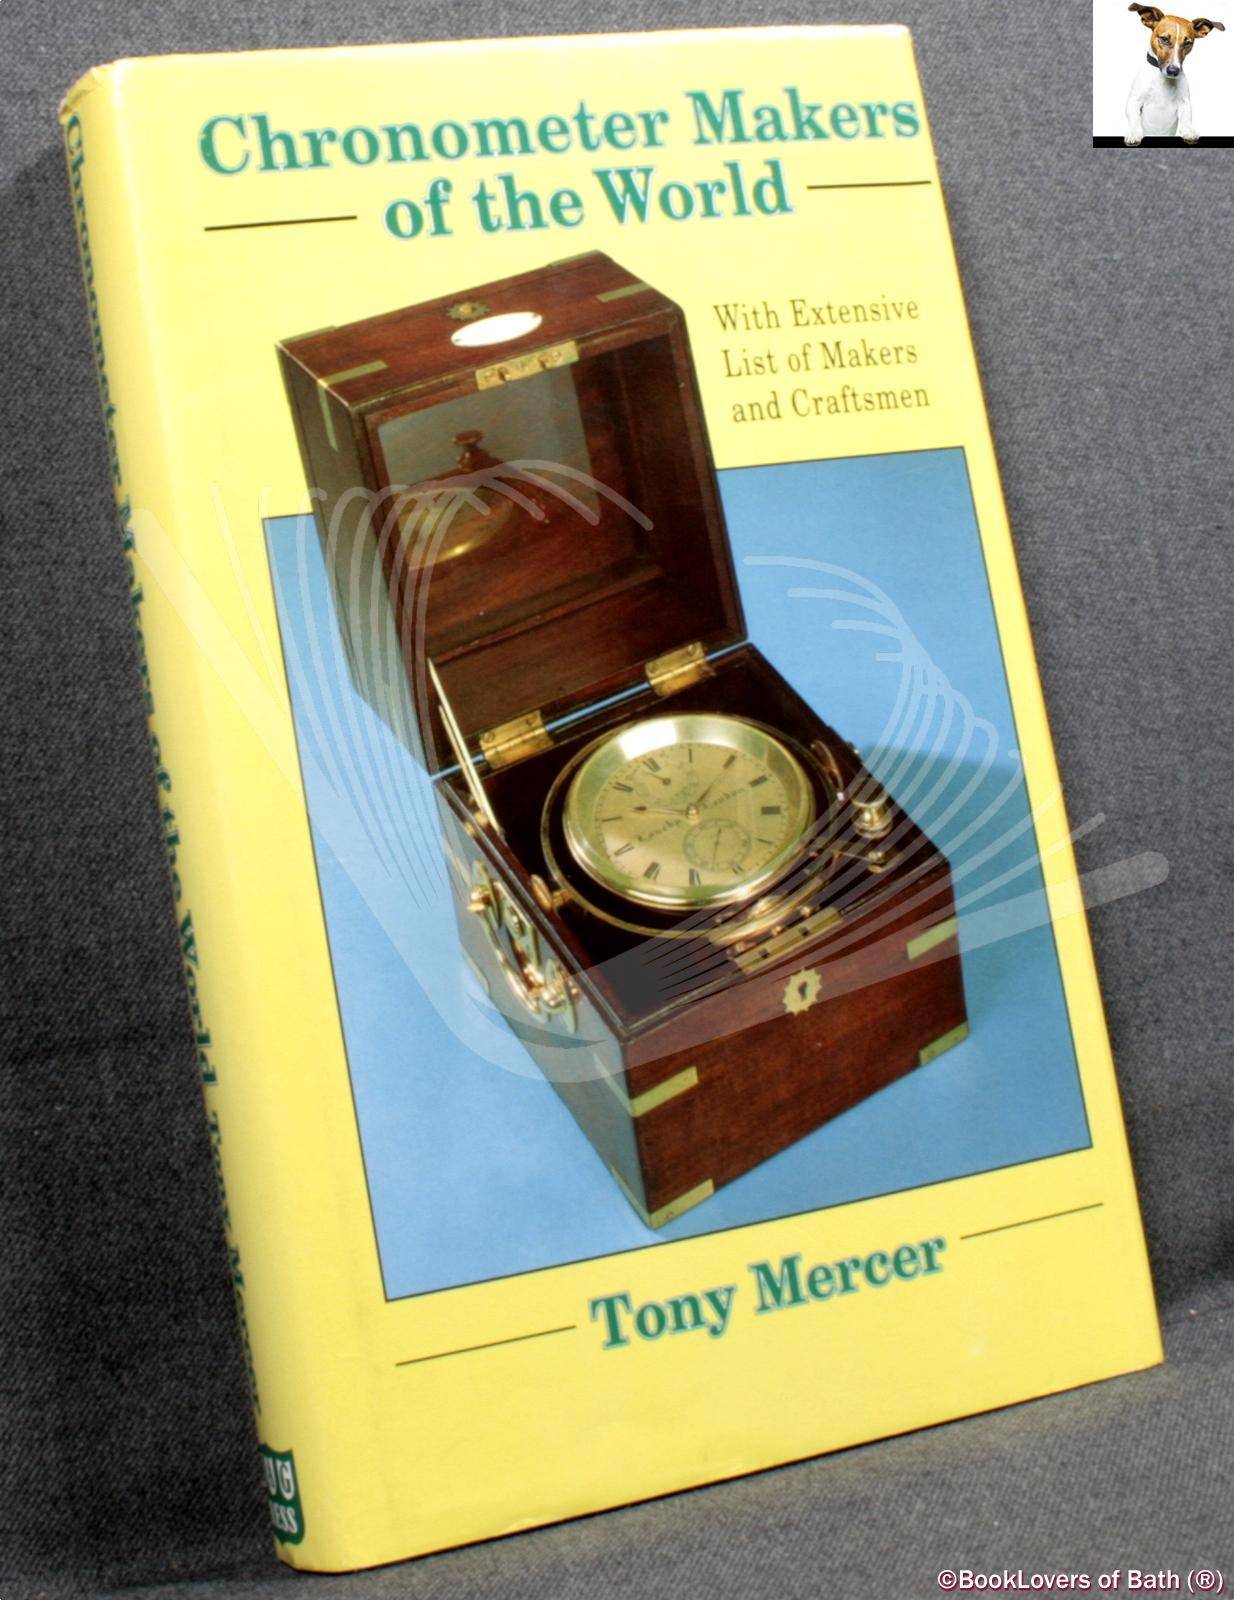 Chronometer Makers of the World: With an Extensive List of Makers and Craftsmen - Tony Mercer